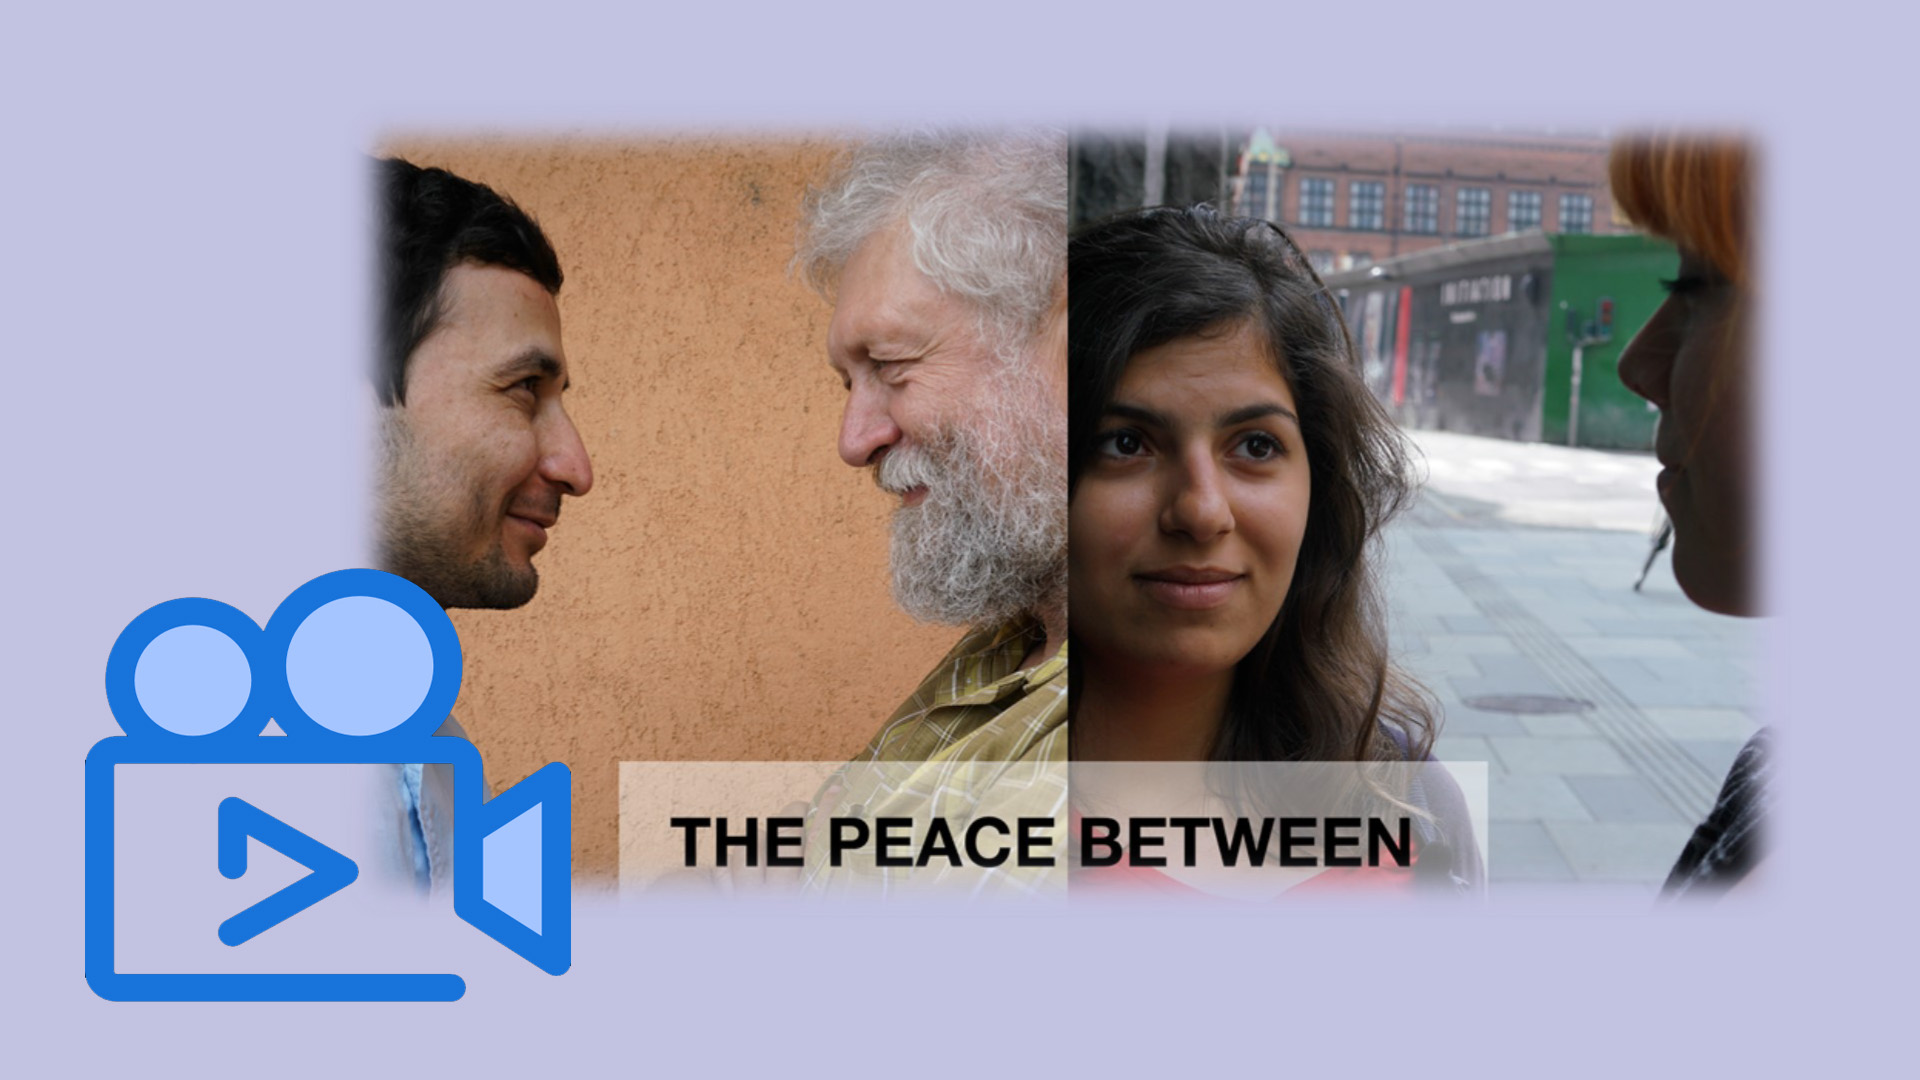 Video Project 'The Peace Between'